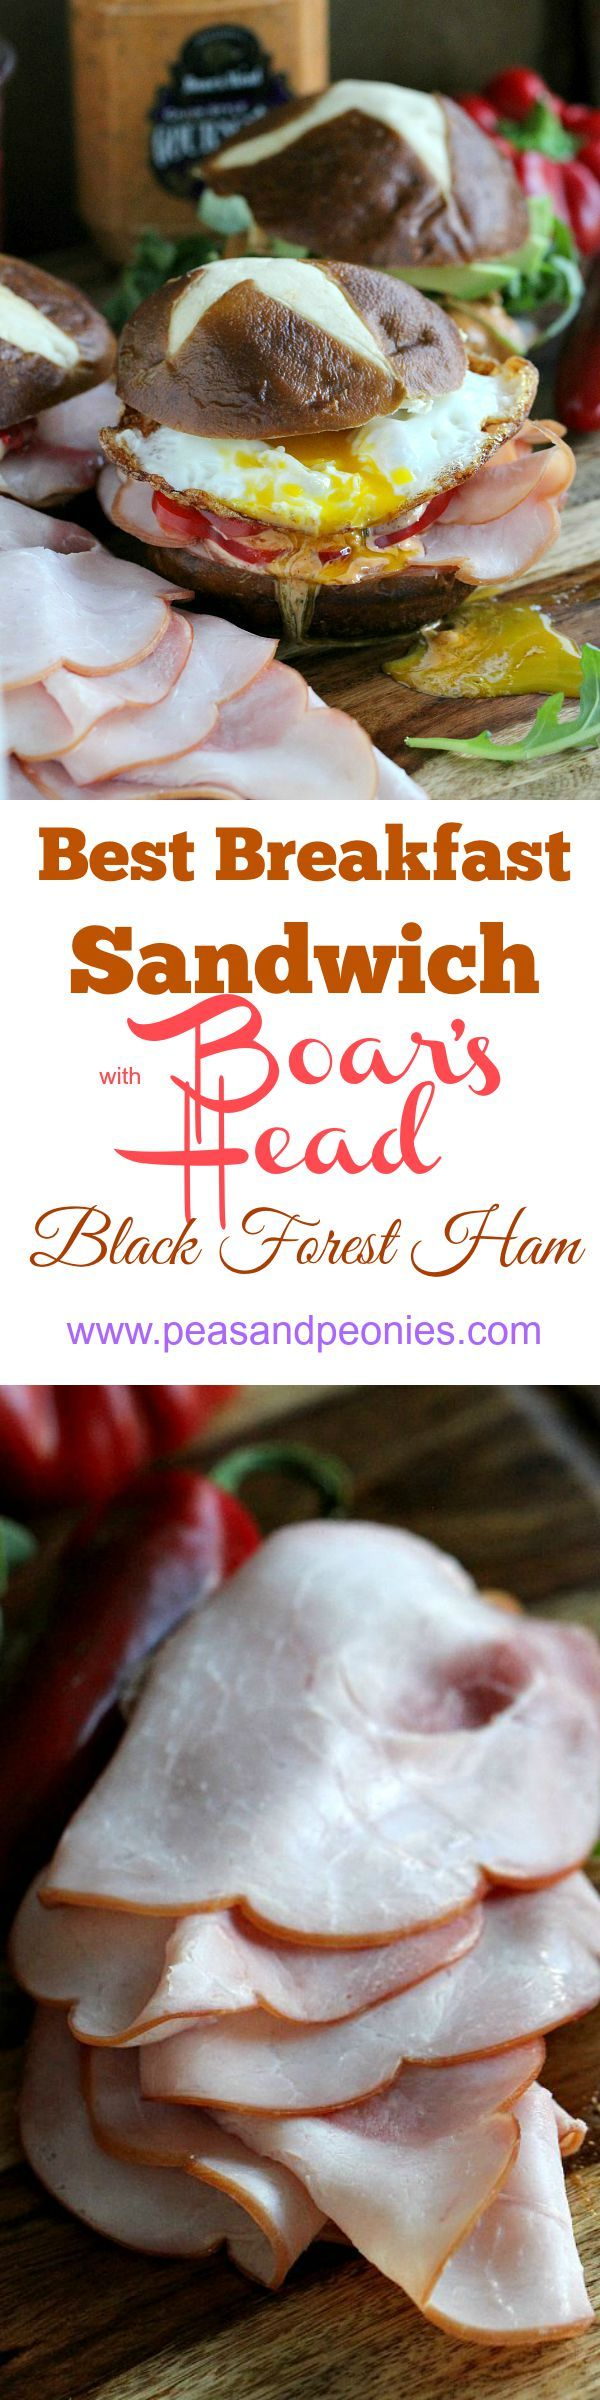 Boar's Head Black Forest Ham - the Perfect Pairings @boarshead : Showcasing three delicious pairings of how to serve Boar's Head Black Forest Ham: sweet, spicy savory and the ultimate breakfast sandwich - Peas and Peonies